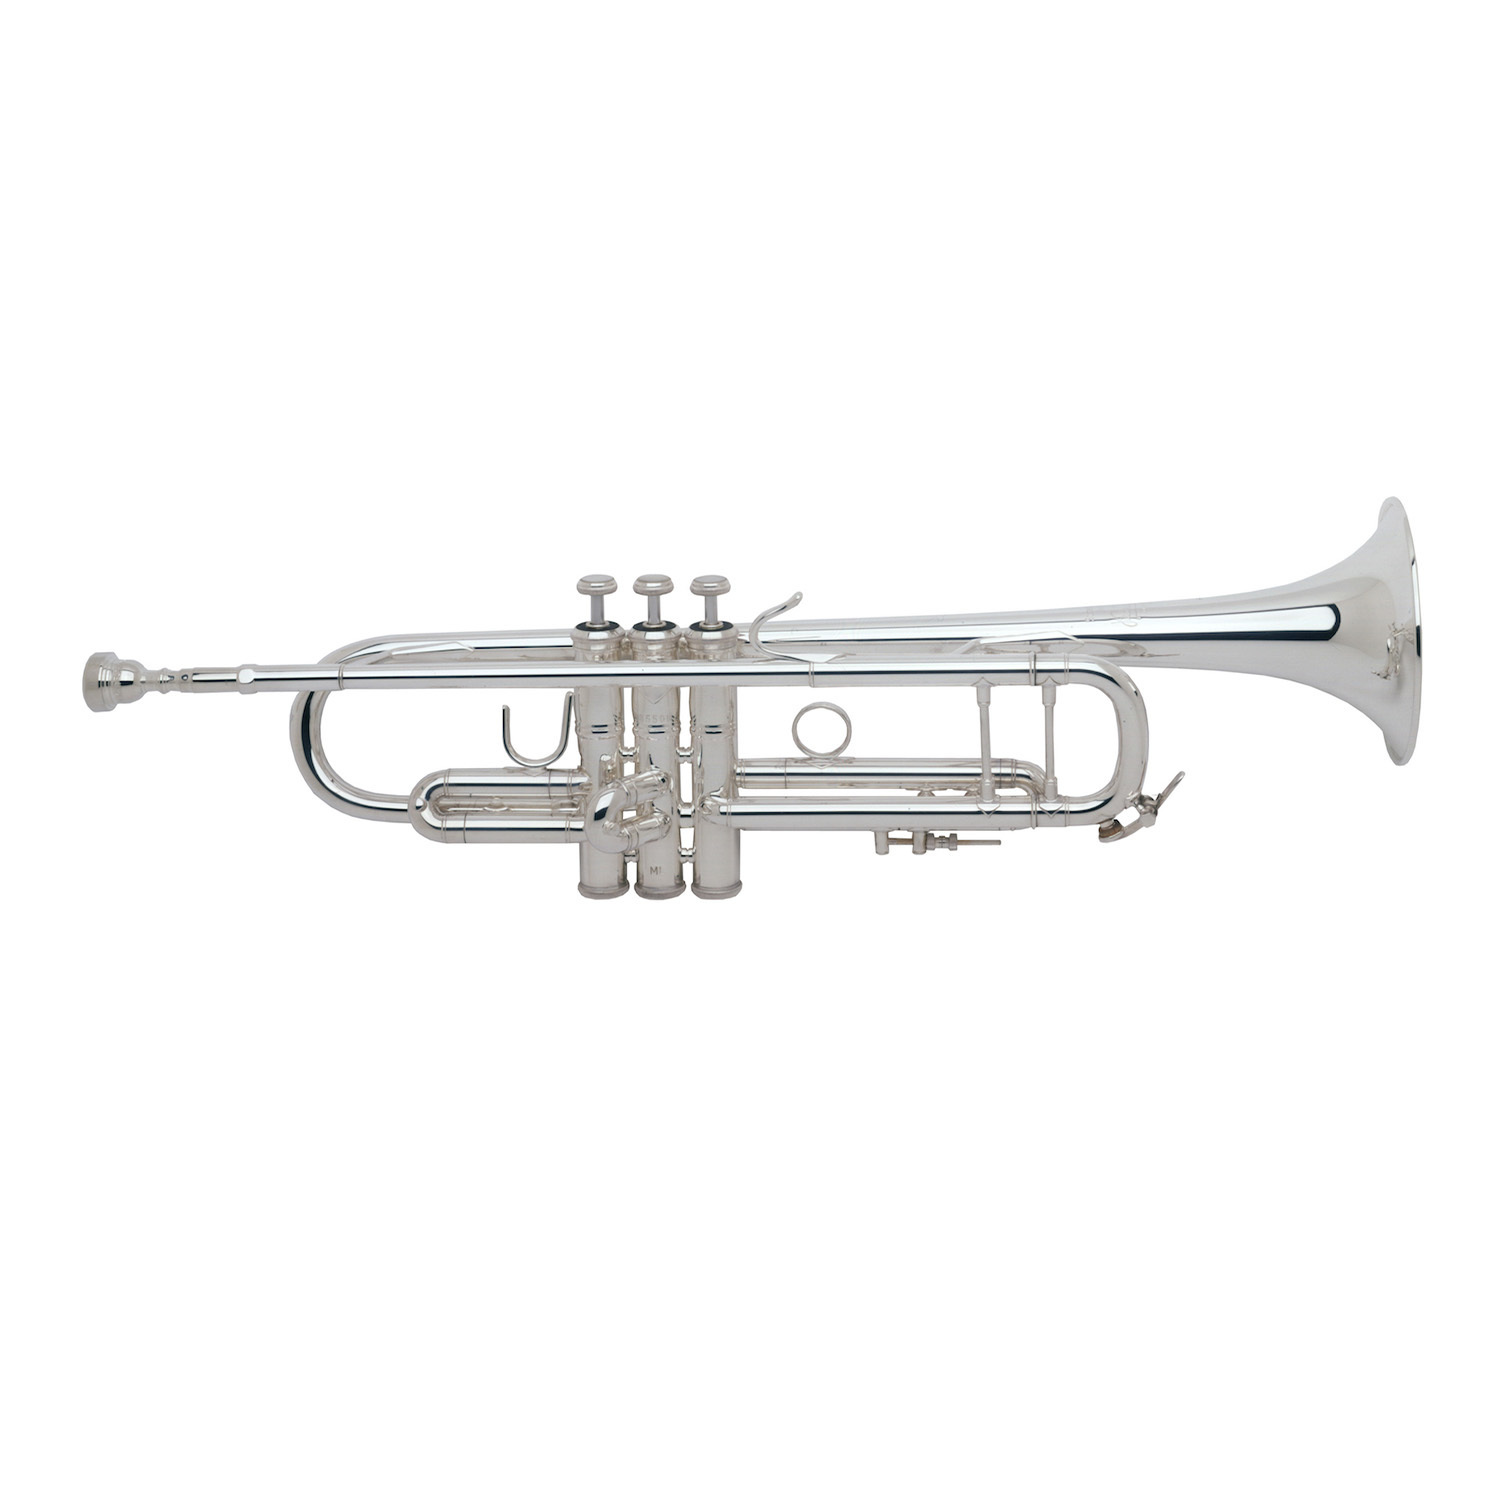 Bach Stradivarius 37 Bb Trumpet - Silver Plating - $250 INSTANT REBATE (Shown in Cart)